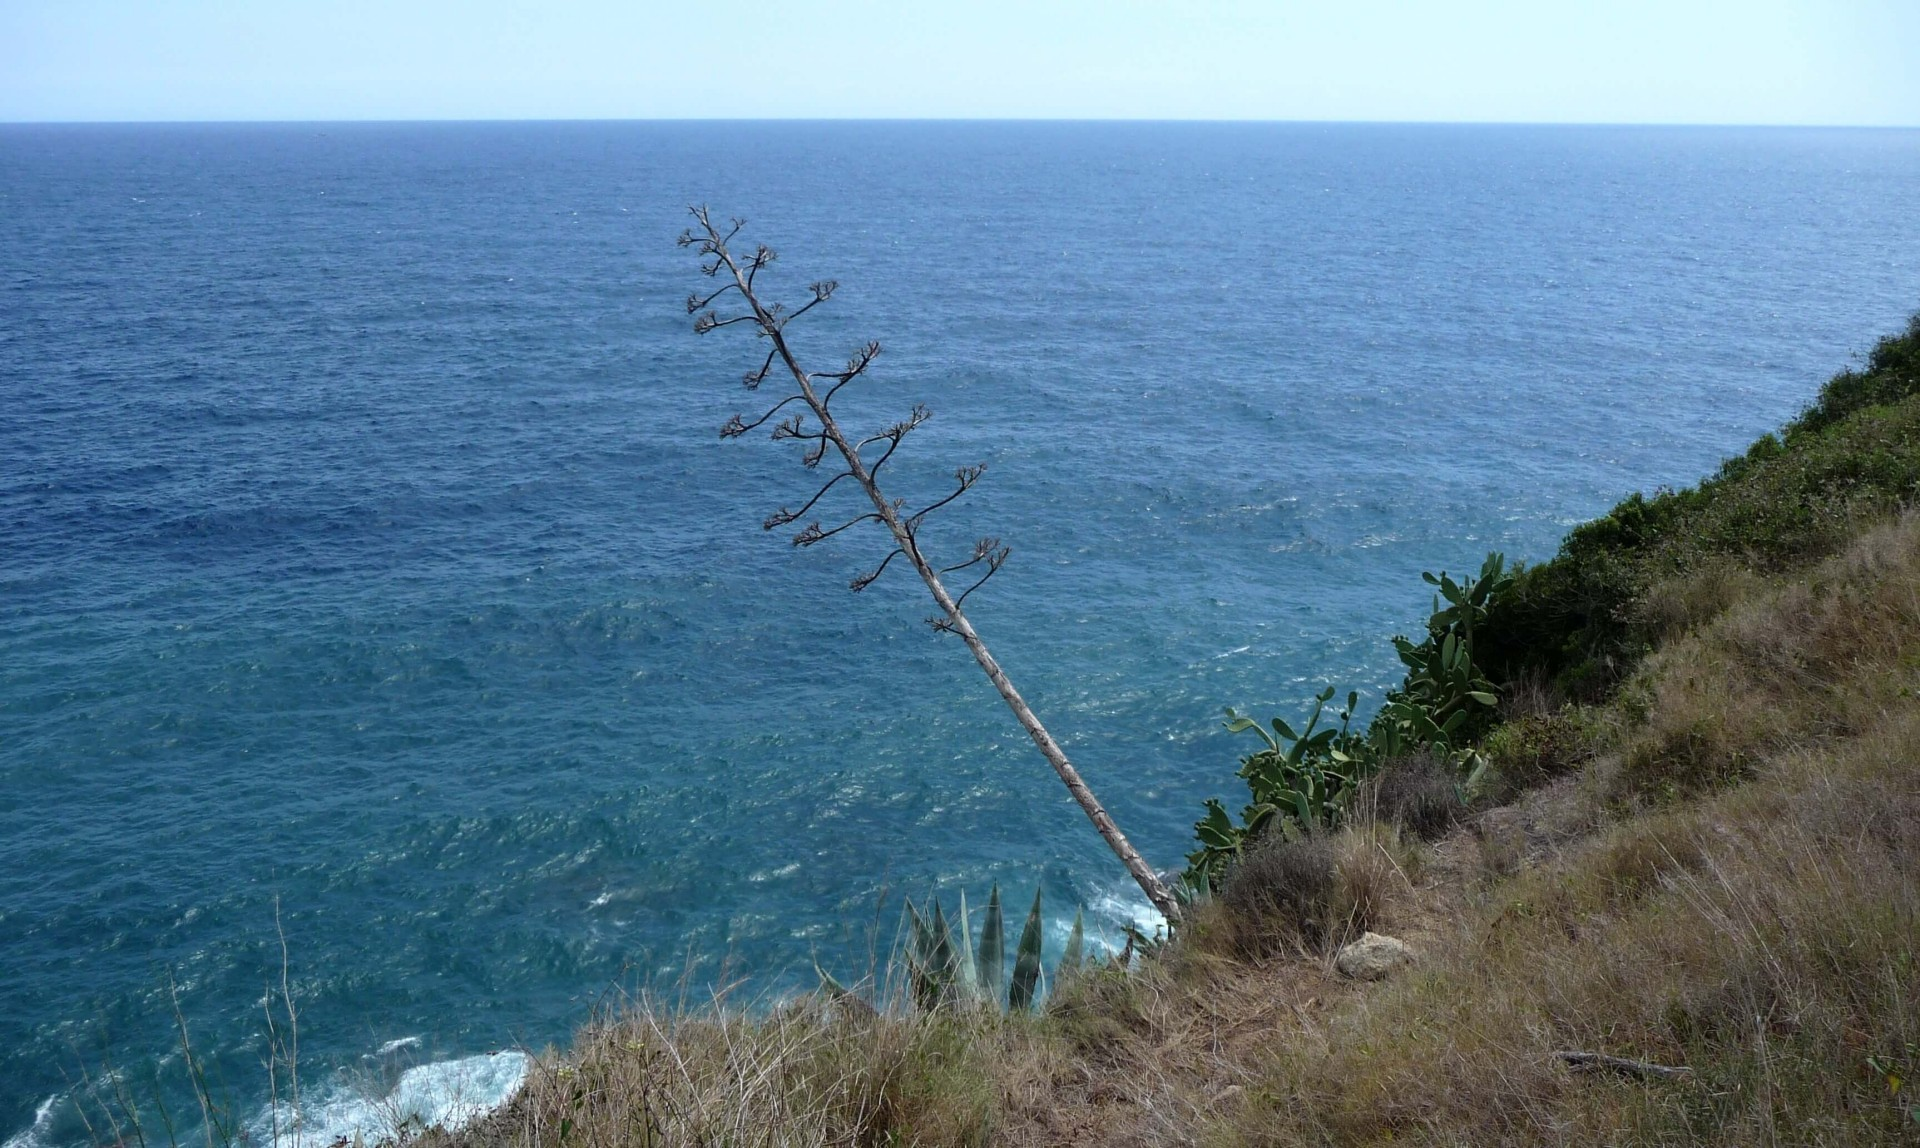 Agave am Meer in Lloret de Mar